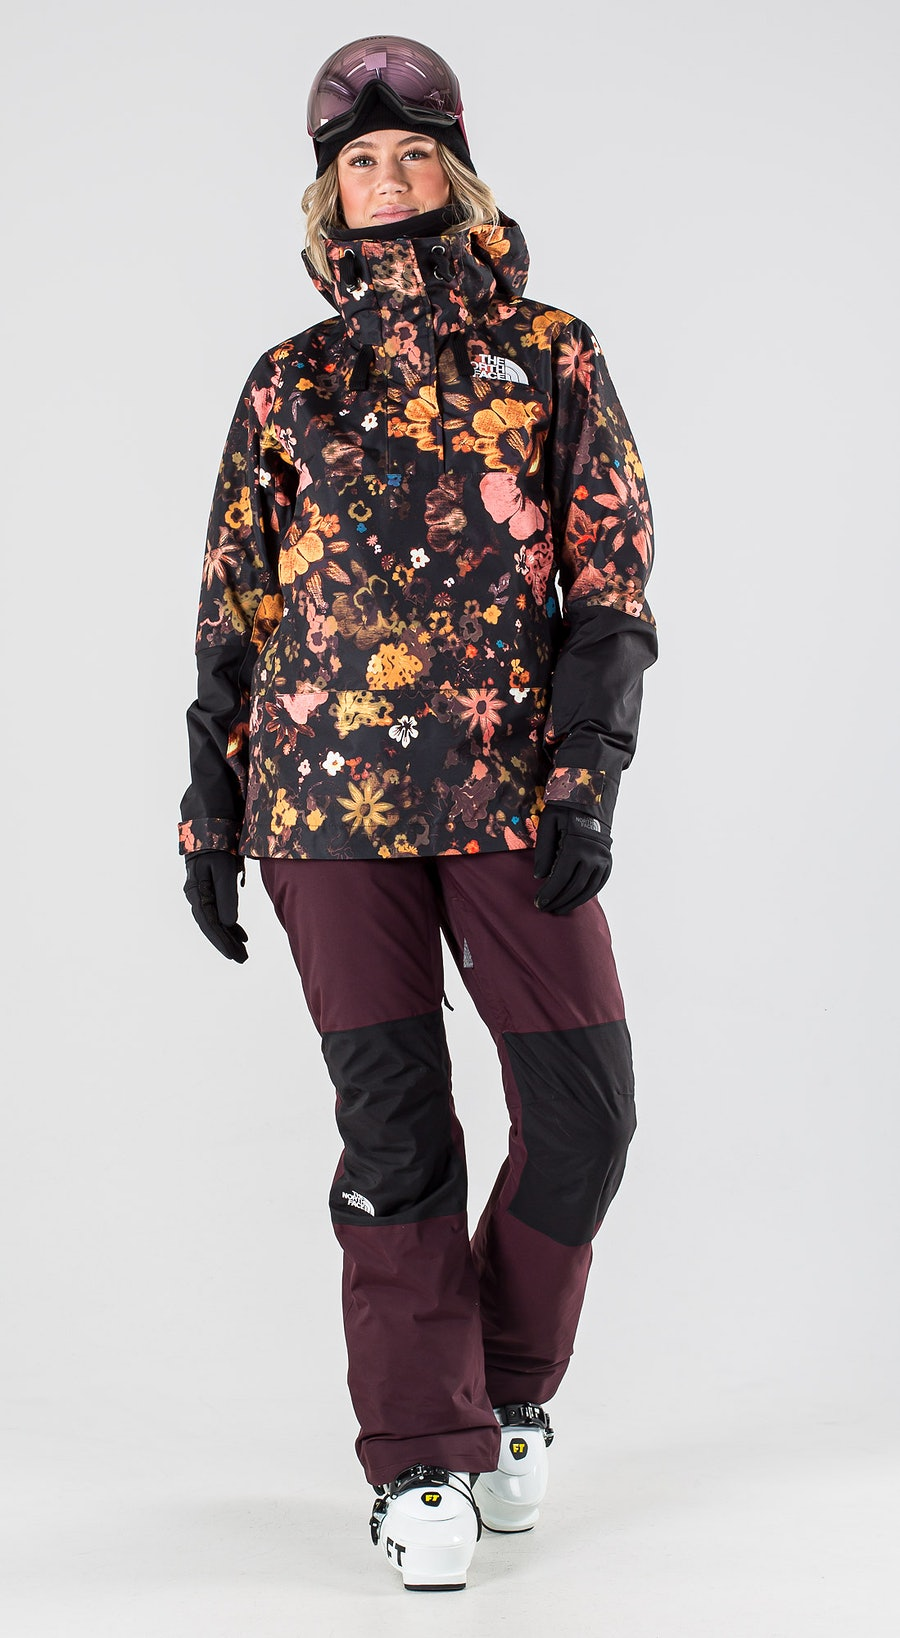 The North Face Tanager Tnf Black/Tnf Black Flowerchld Multiprint Ski Clothing Multi